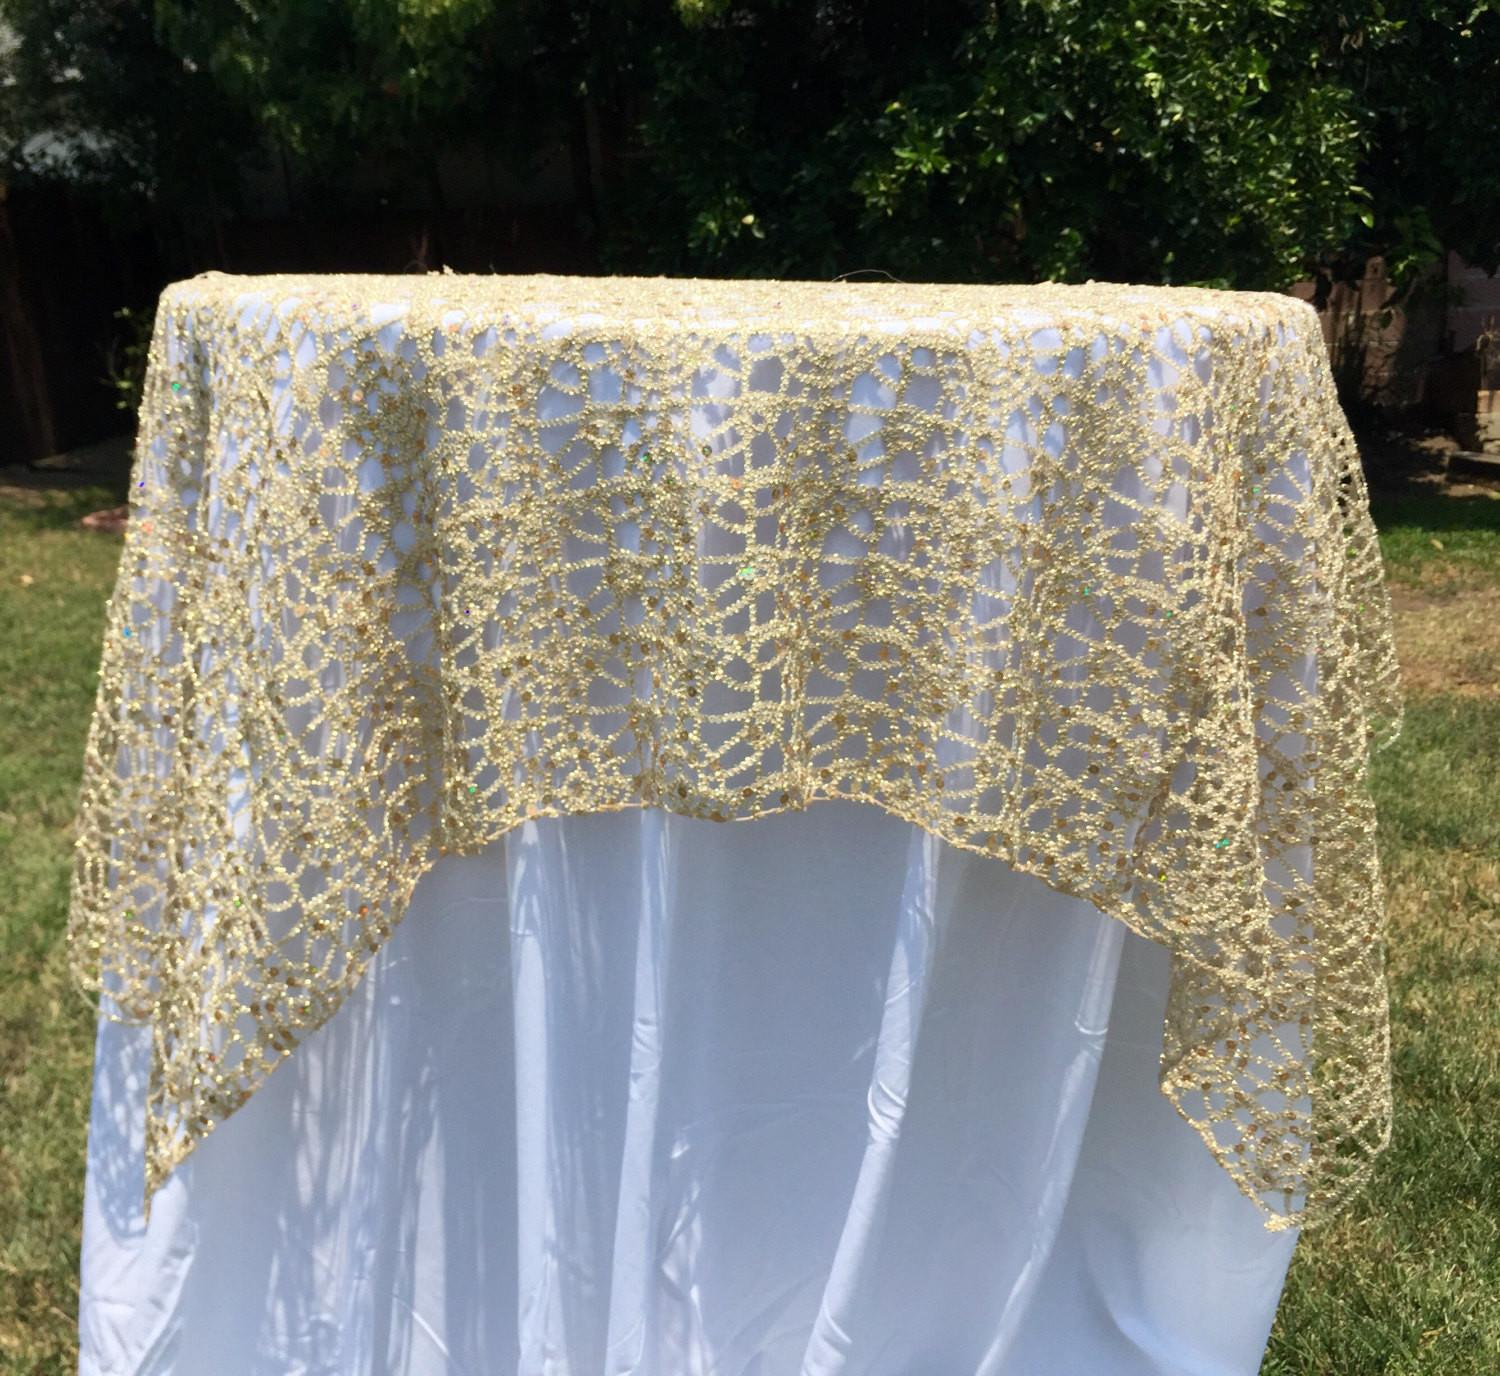 Gold Silver Sequence Chain Lace Table Overlay